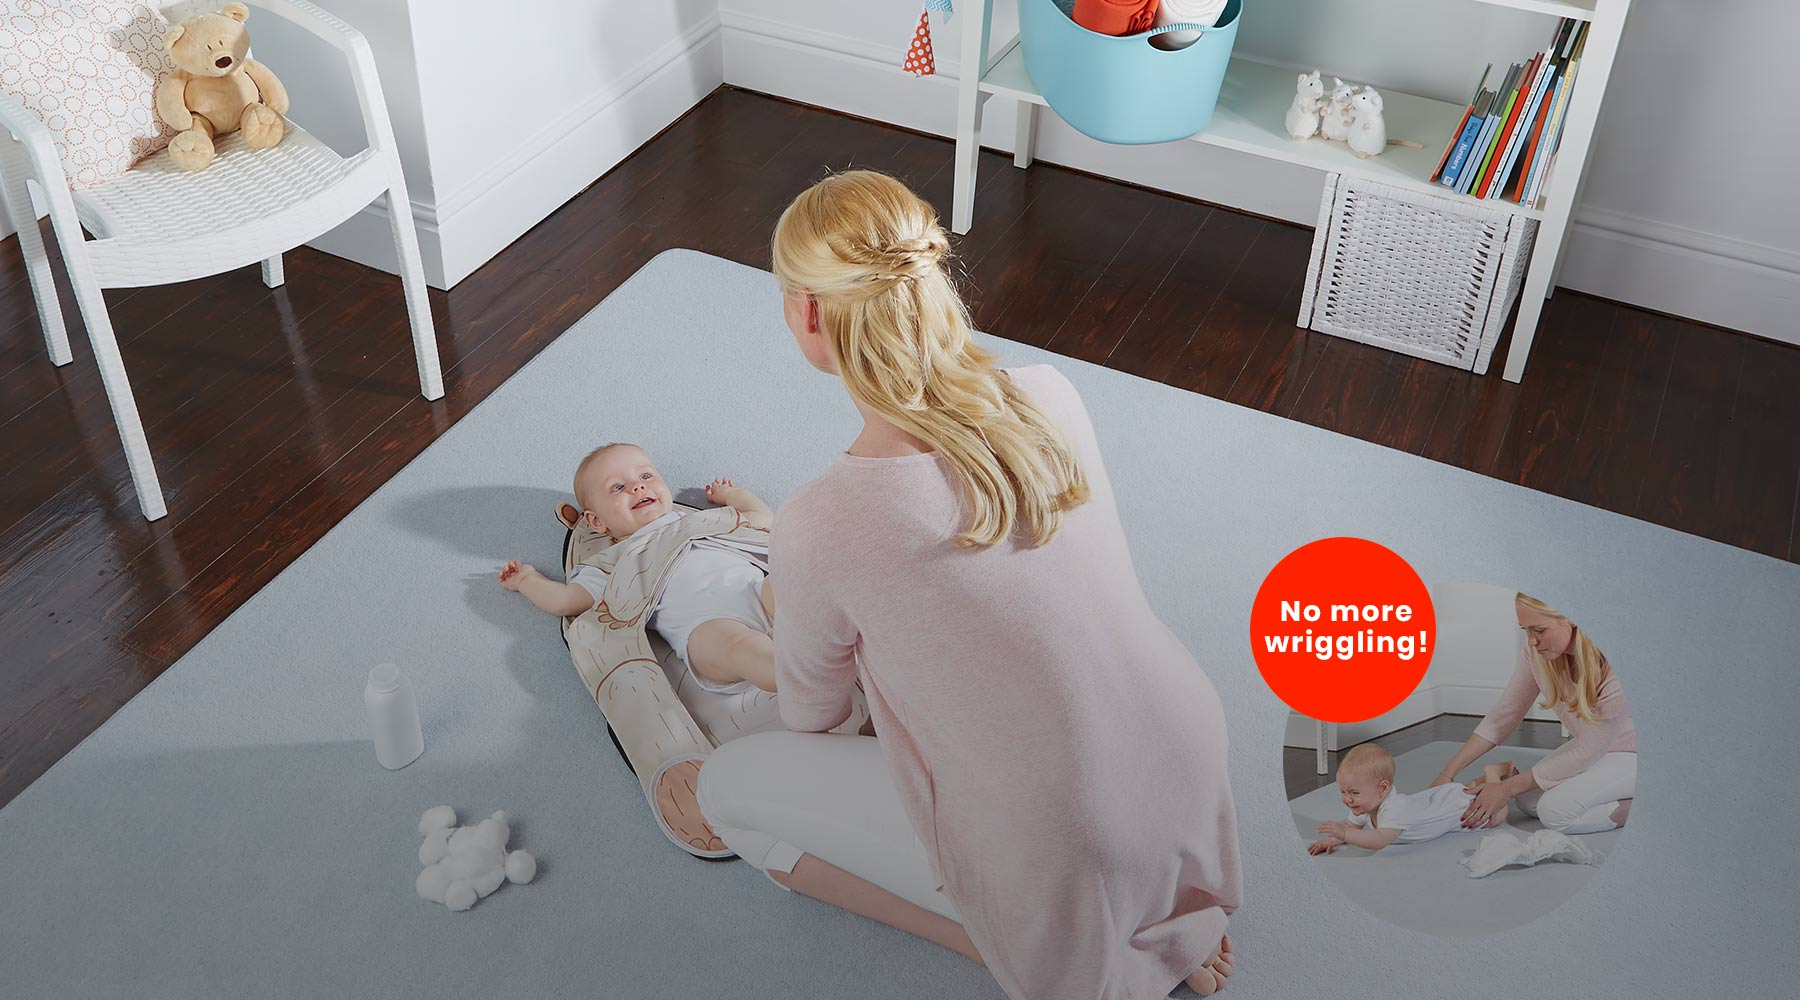 Mother changing baby diaper using The Wriggler changing pad